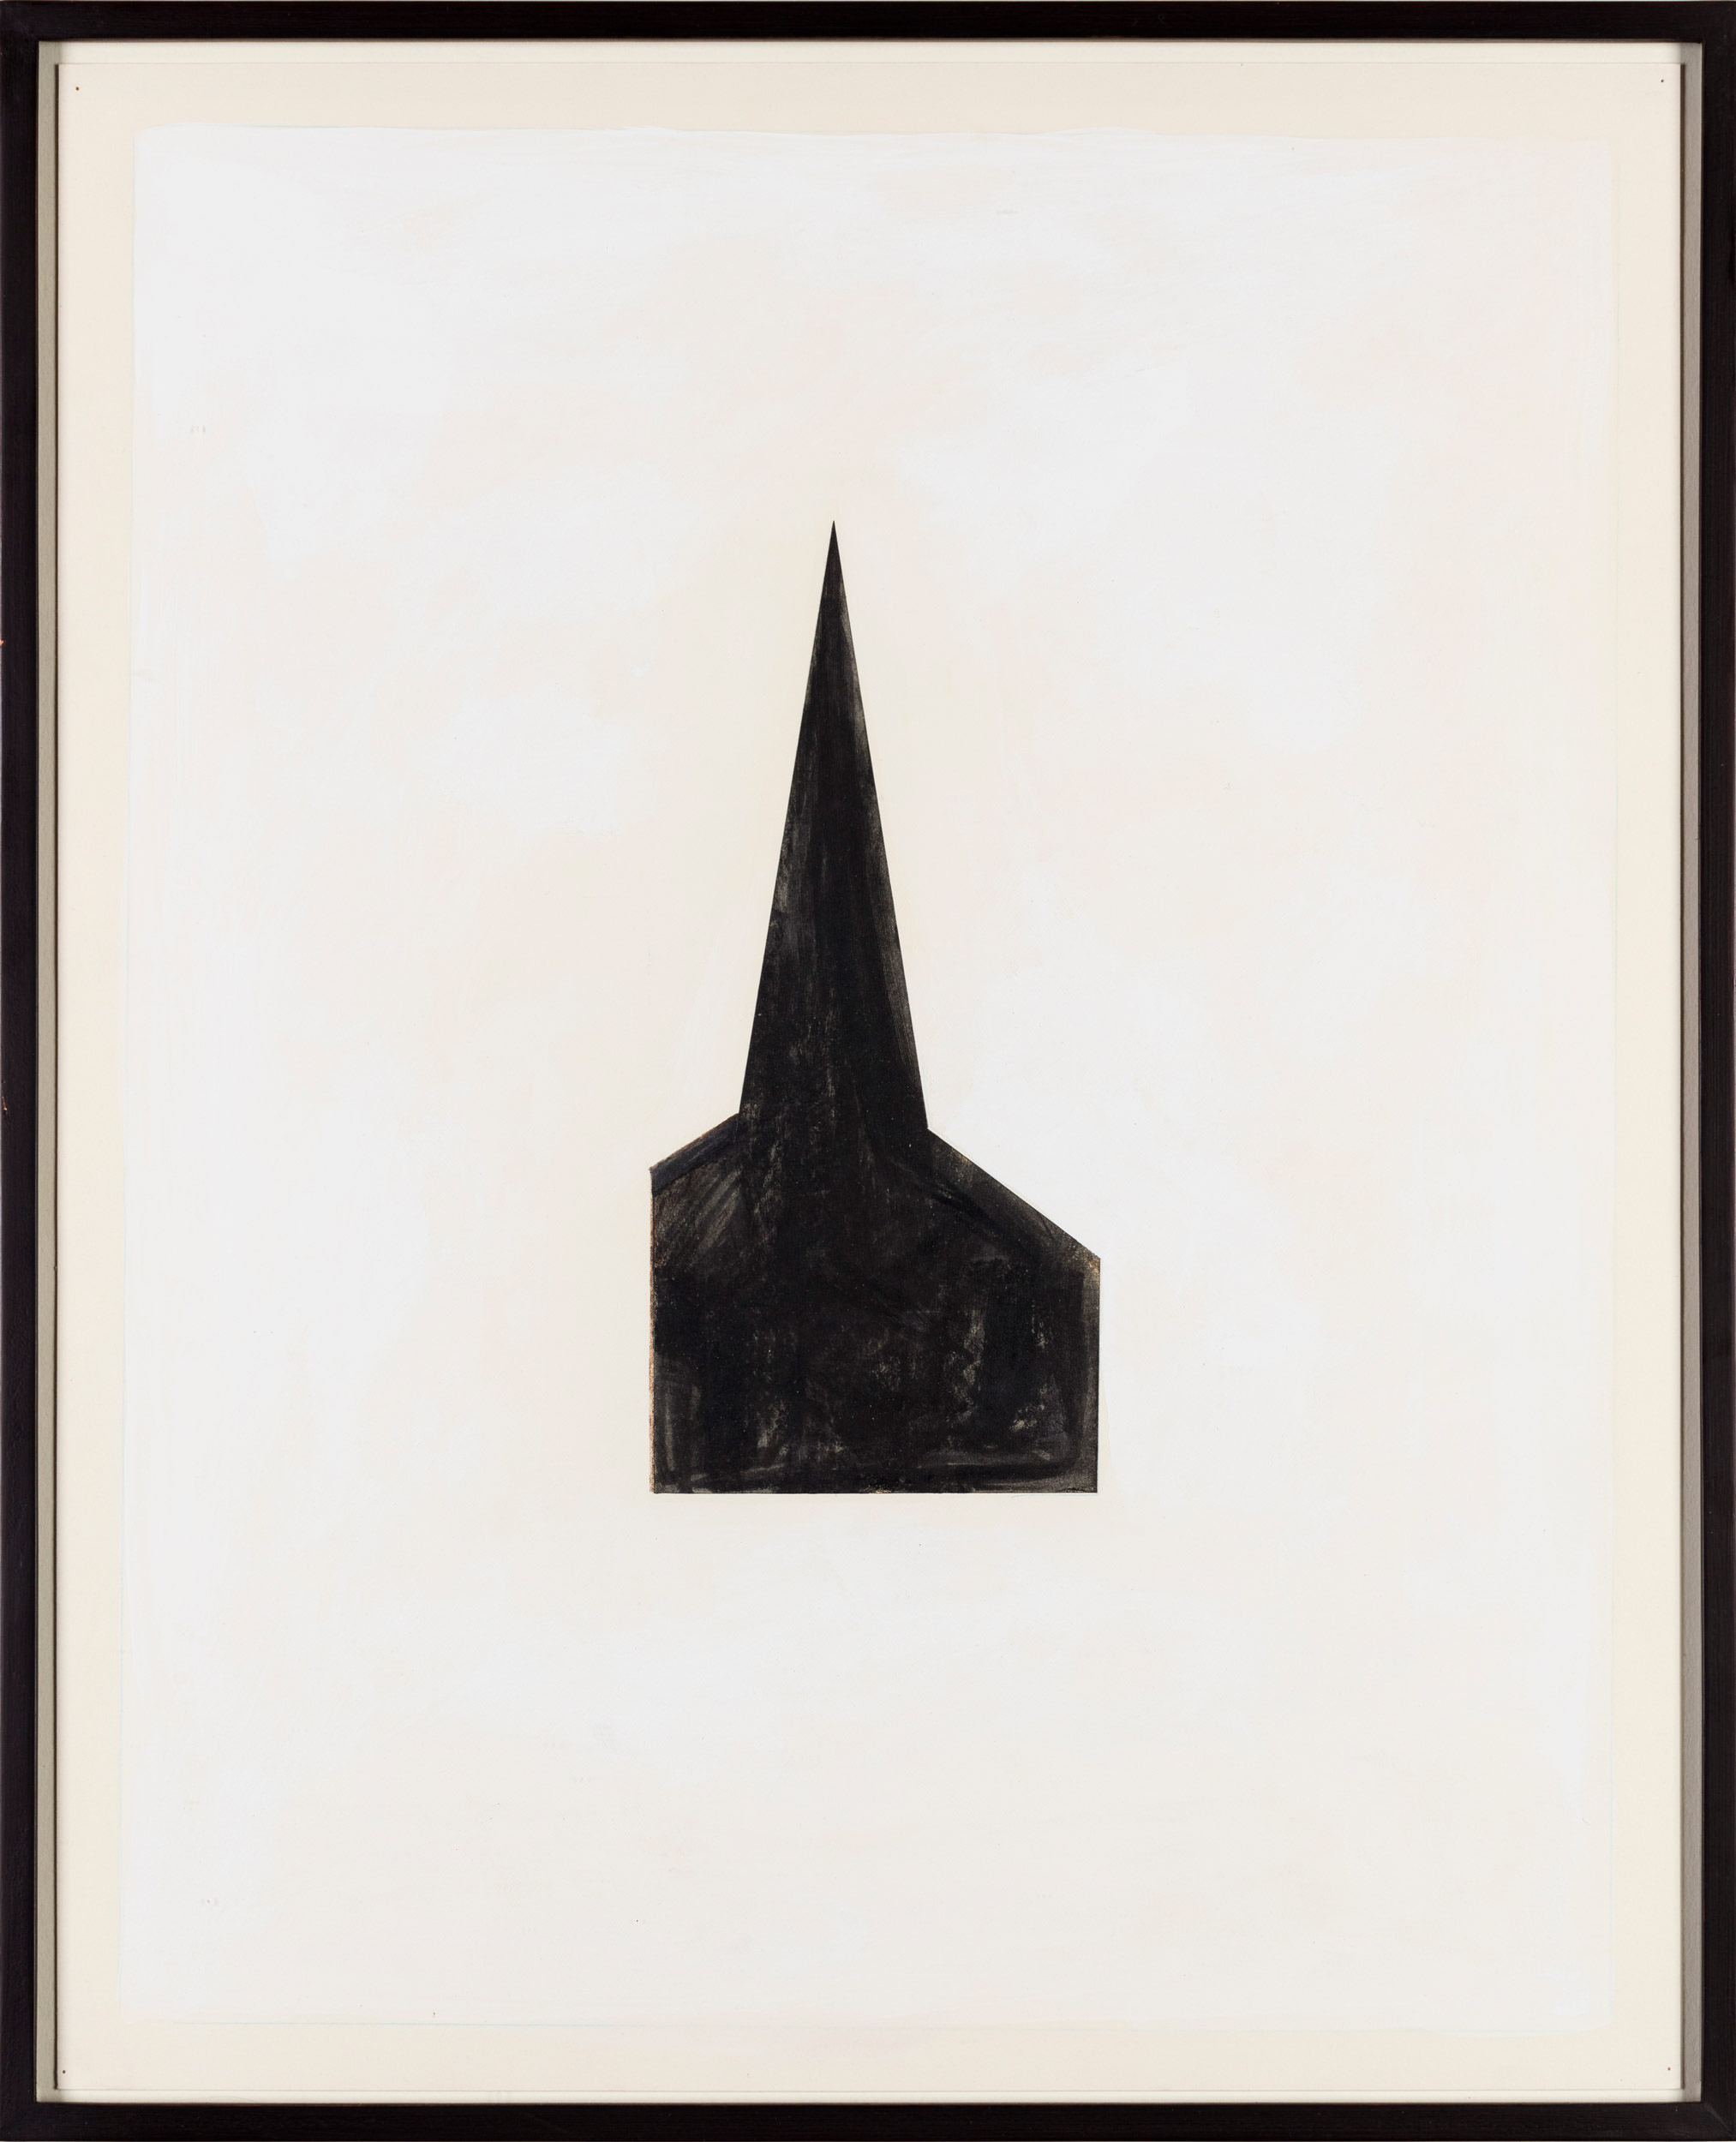 Image of Robert Therrien, Untitled #100 (Steeple), 1980. Tempera and collage on paper.